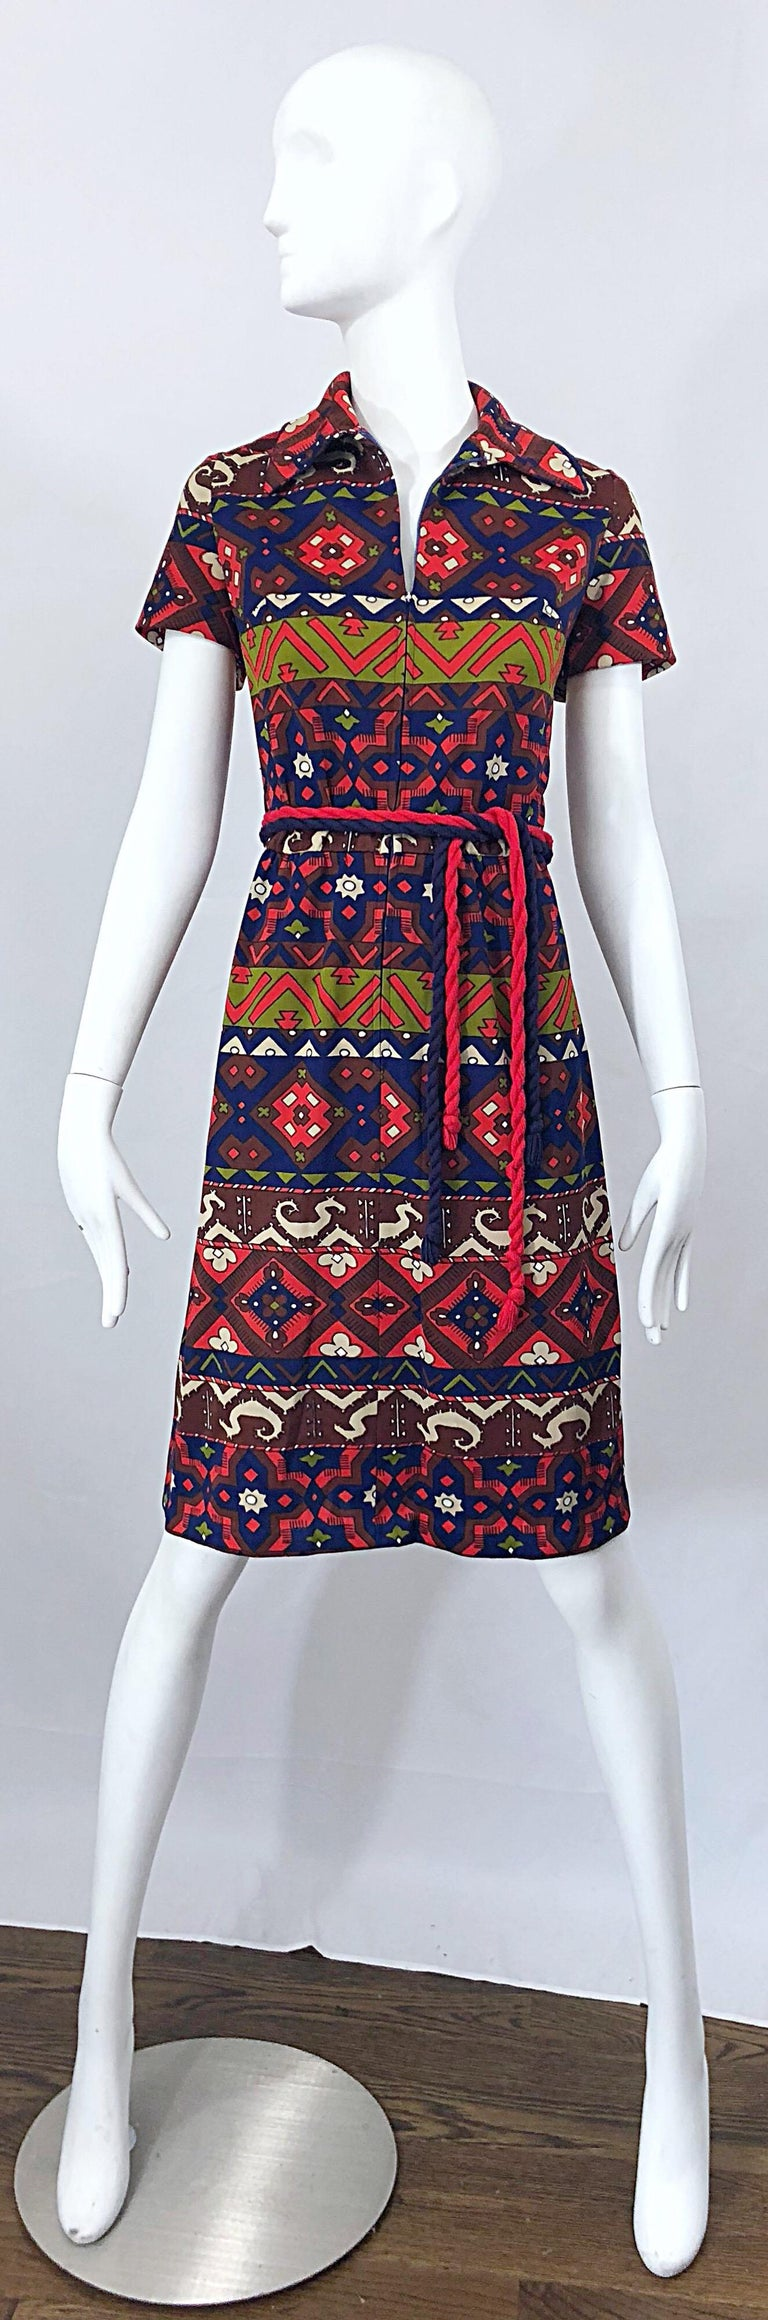 1970s Aztec Novelty Print Amazing Vintage 70s Knit Rope Belted Shirt Dress For Sale 8